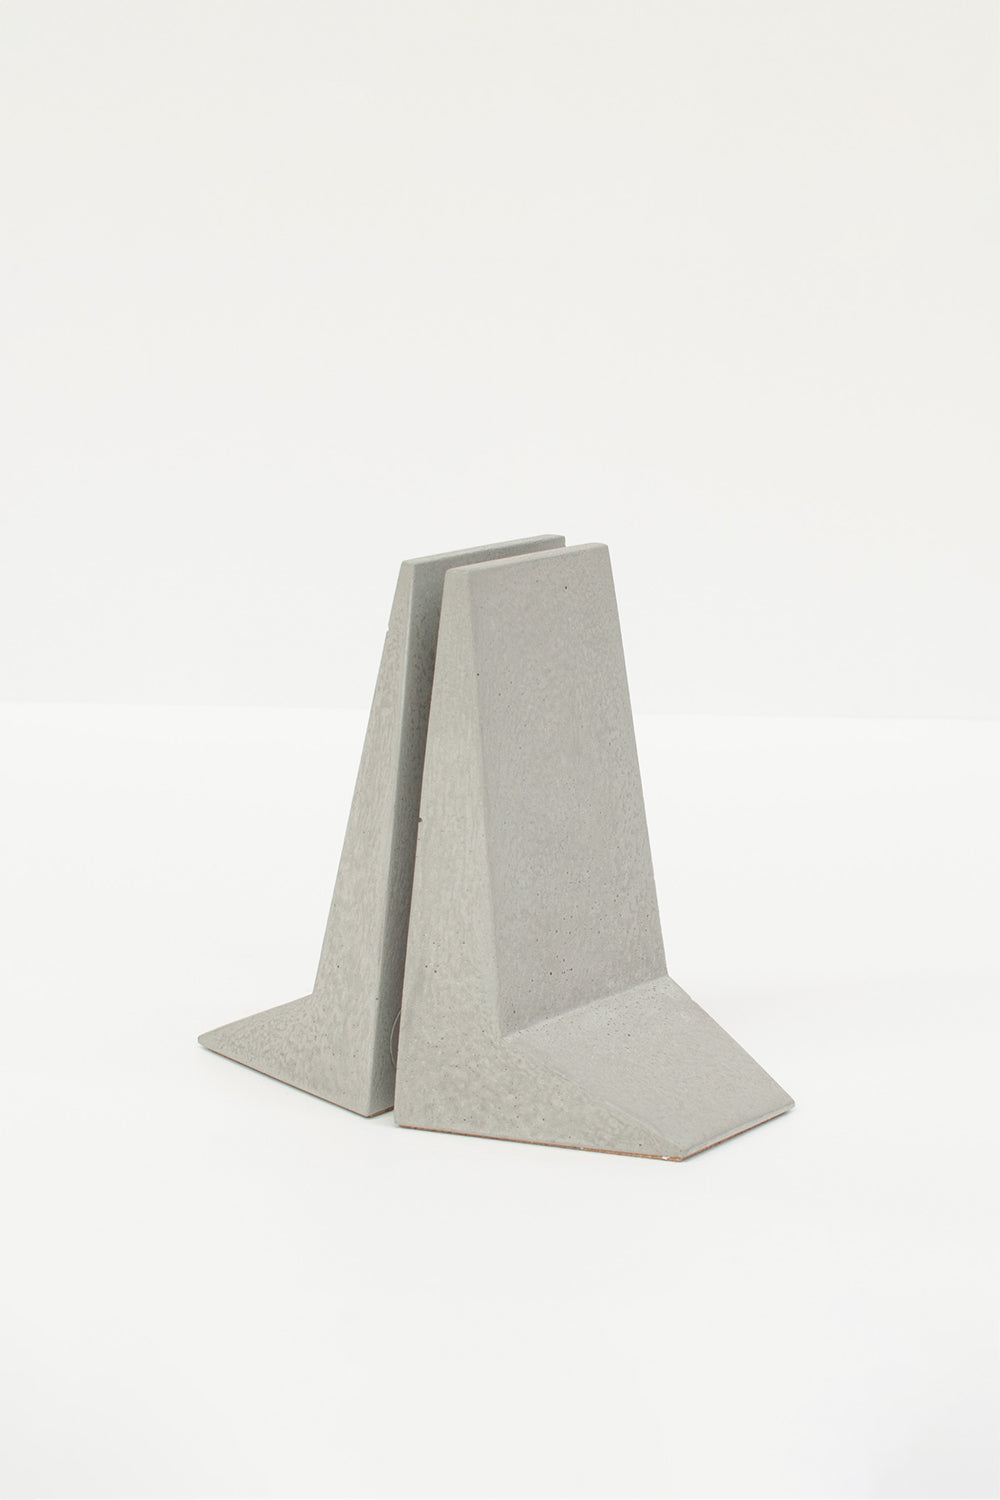 Steeple Bookend